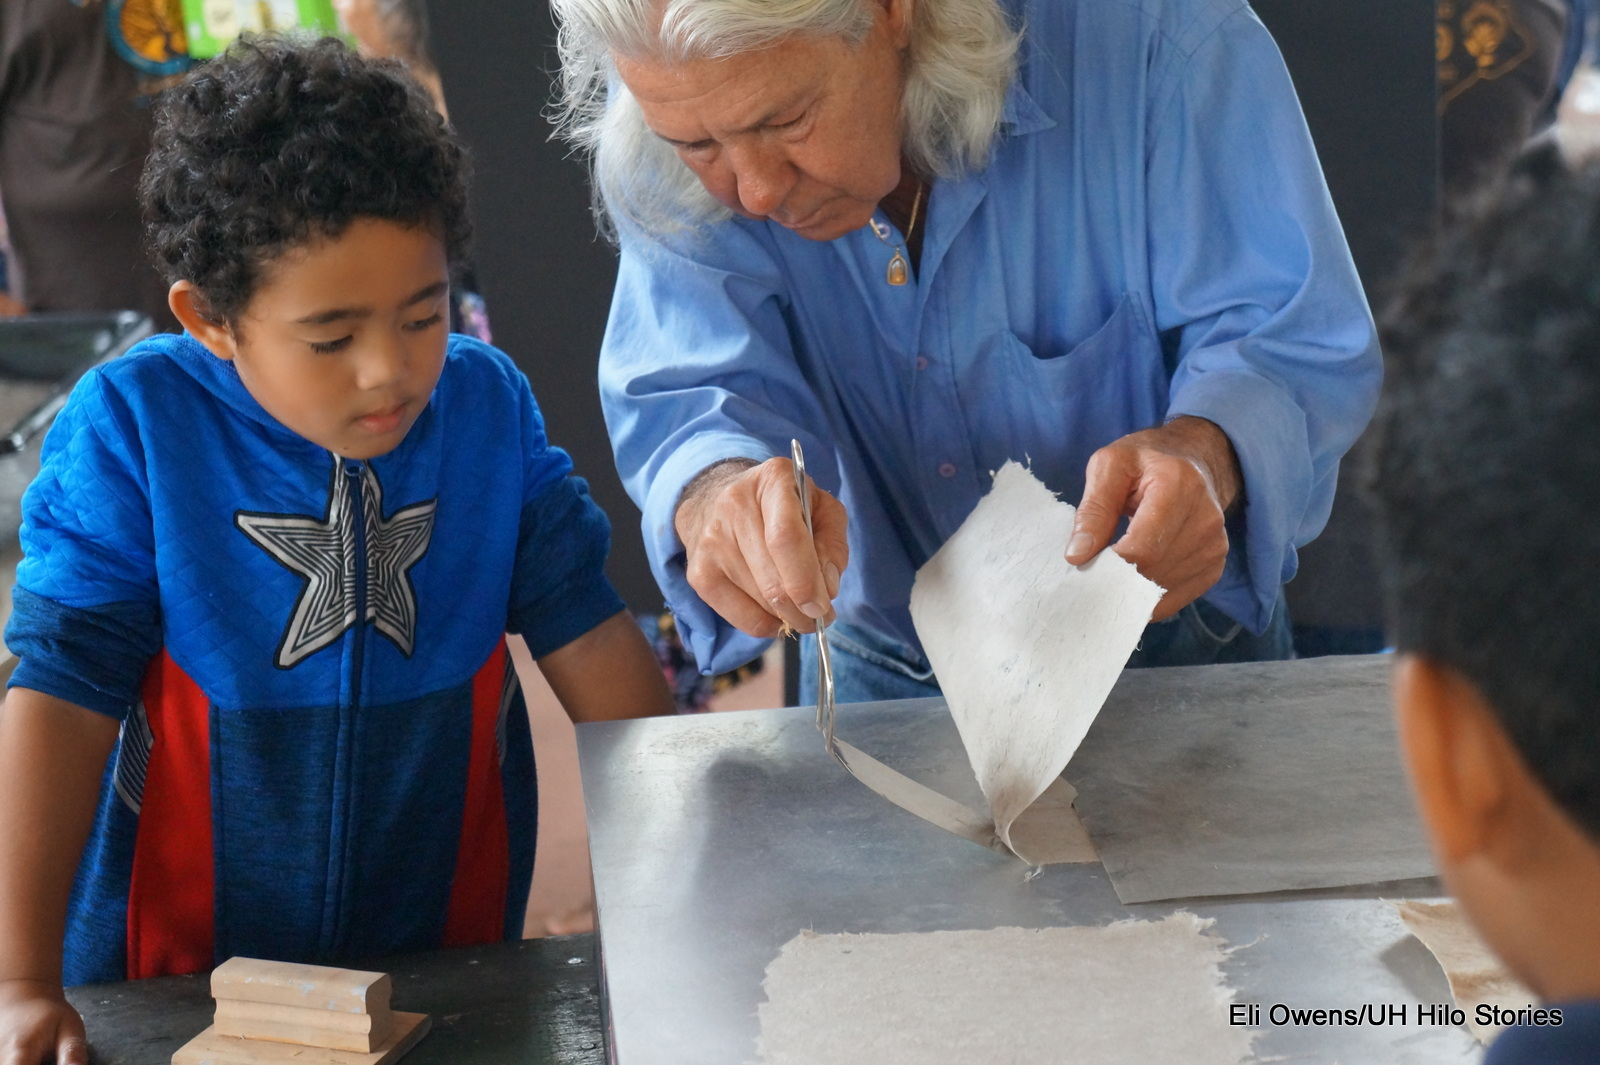 MAN HELPS CHILD WITH FINAL STEP OF PAPERMAKING.